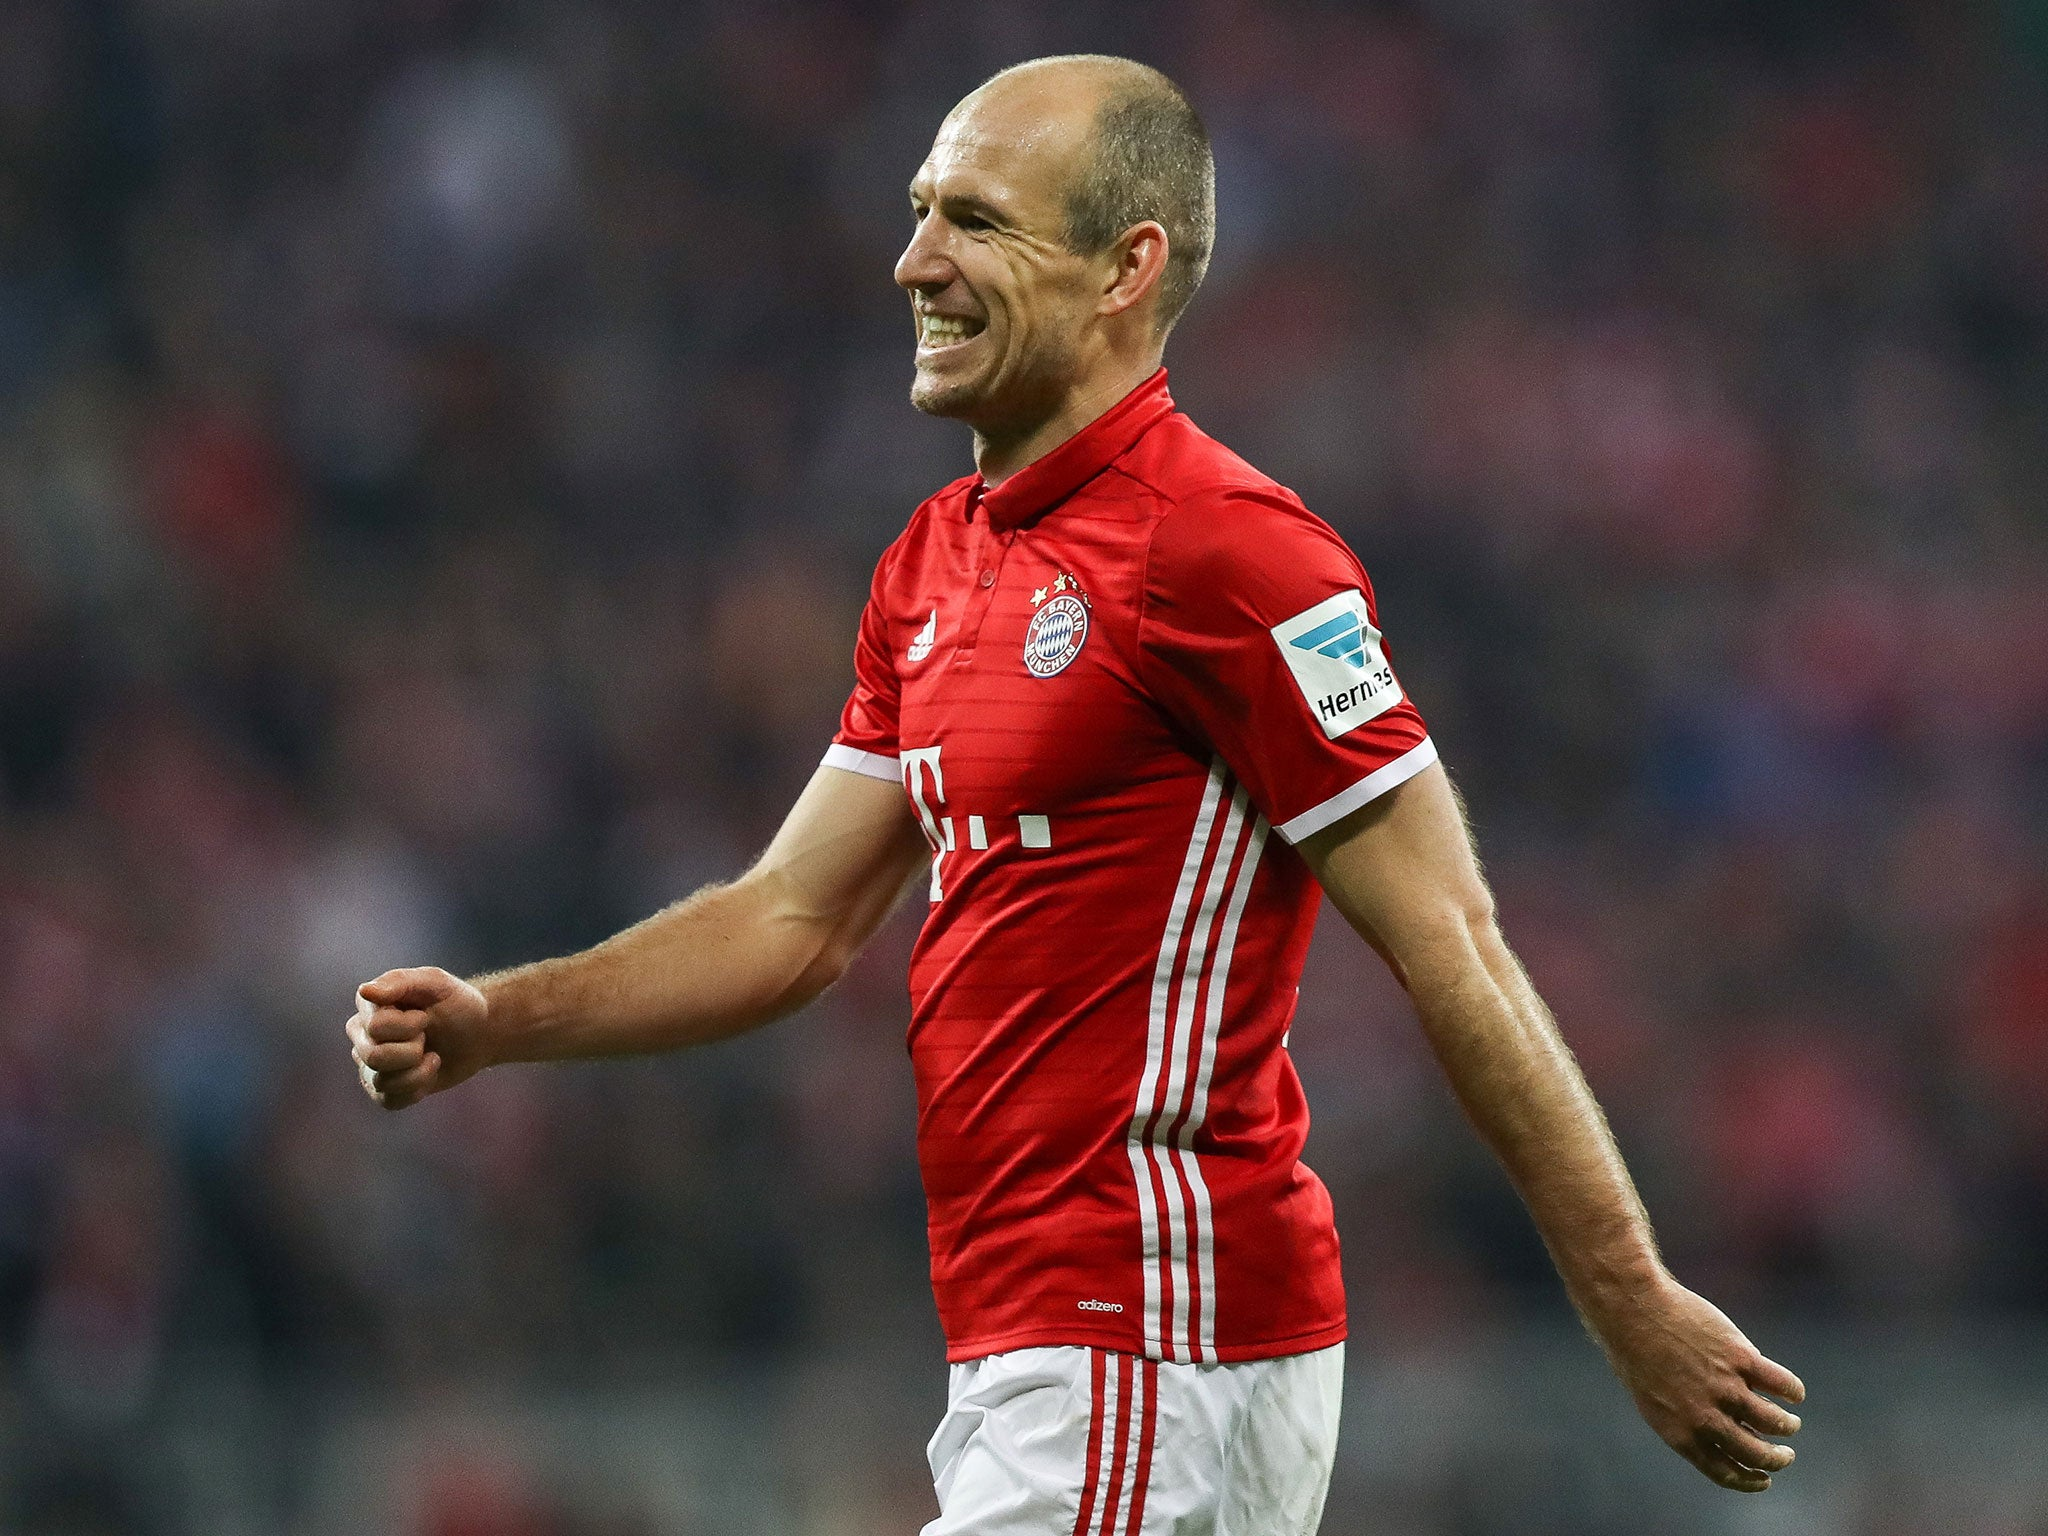 Arjen Robben would rather face Leicester than Arsenal but